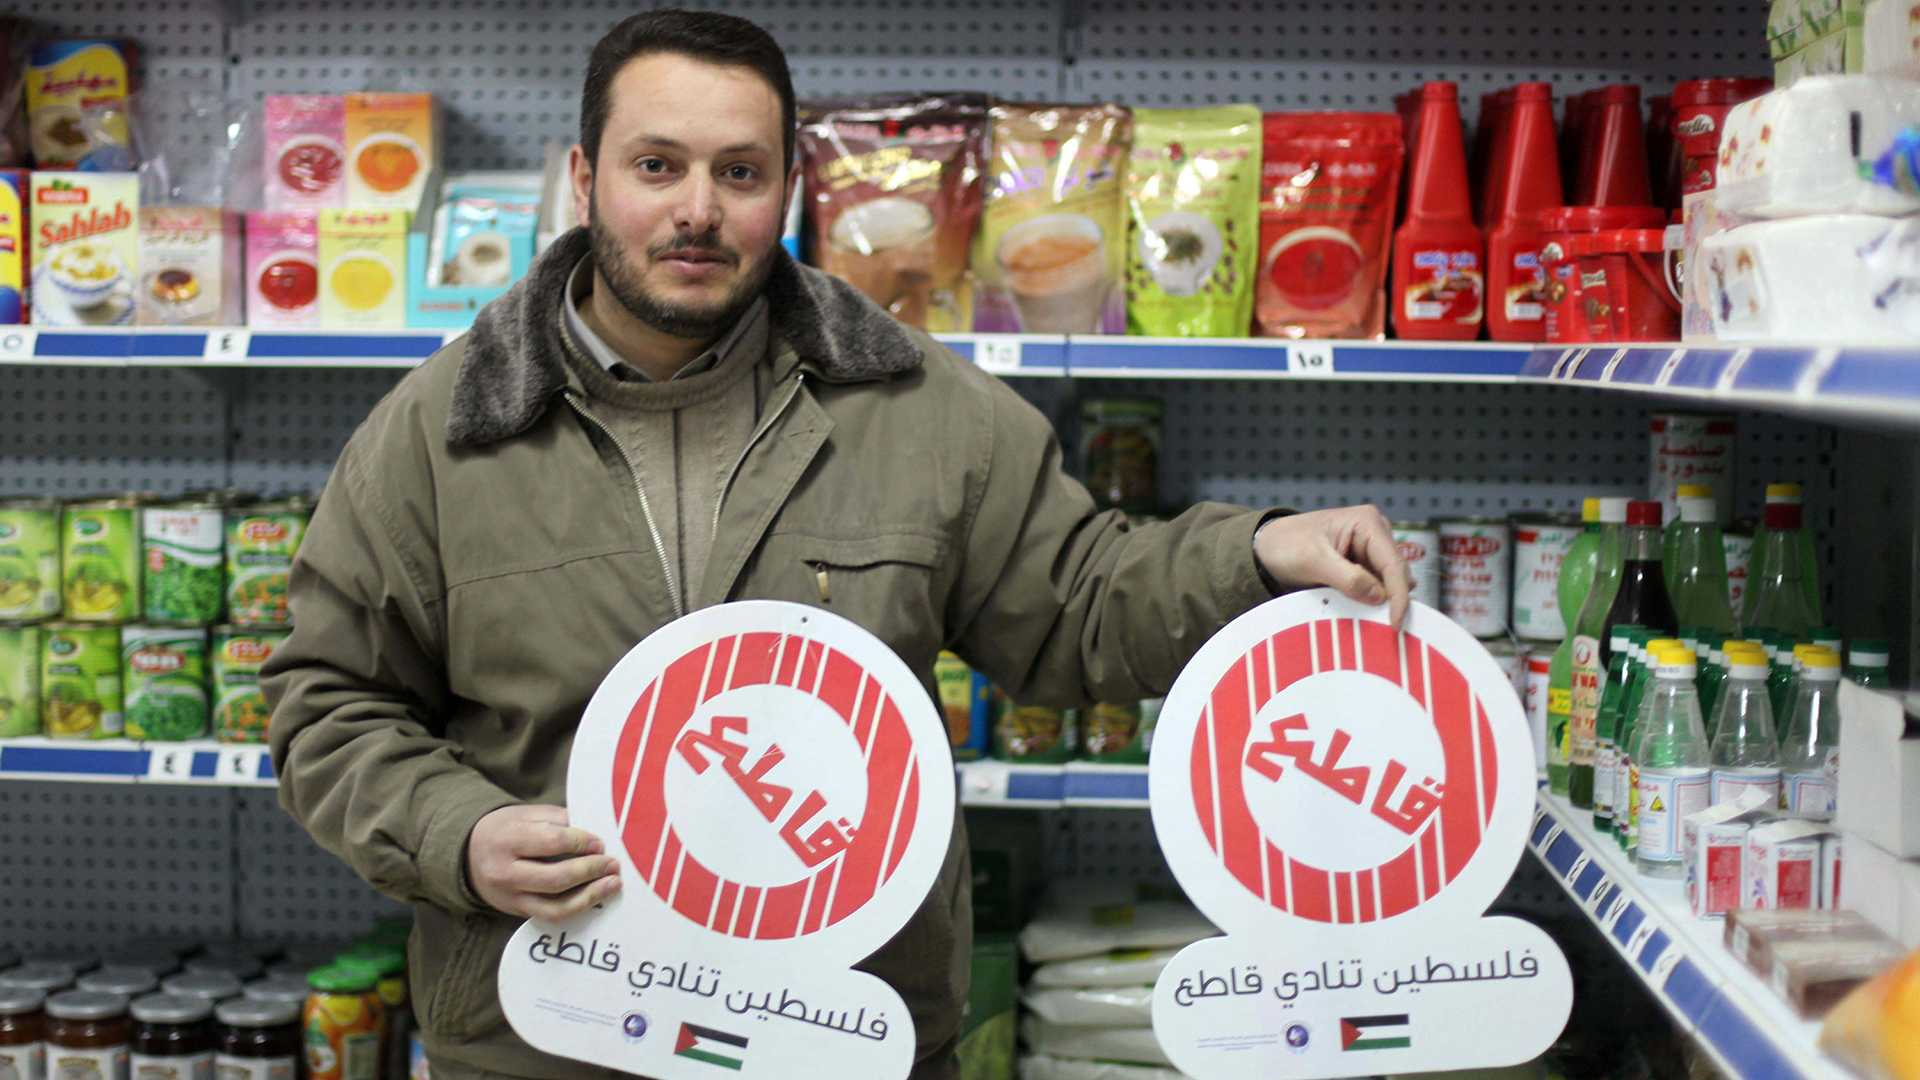 In the southern West Bank city of Dura, shopkeeper Murad Amro says he is trying to comply with the Palestinian Authority's call for a boycott, but his customers love Israeli coffee and milk. The Palestinian Authority declared a boycott of six major Israeli food companies in February to protest Israel's freezing of $125 million in tax tranfers. (Daniella Cheslow/McClatchy DC/TNS)